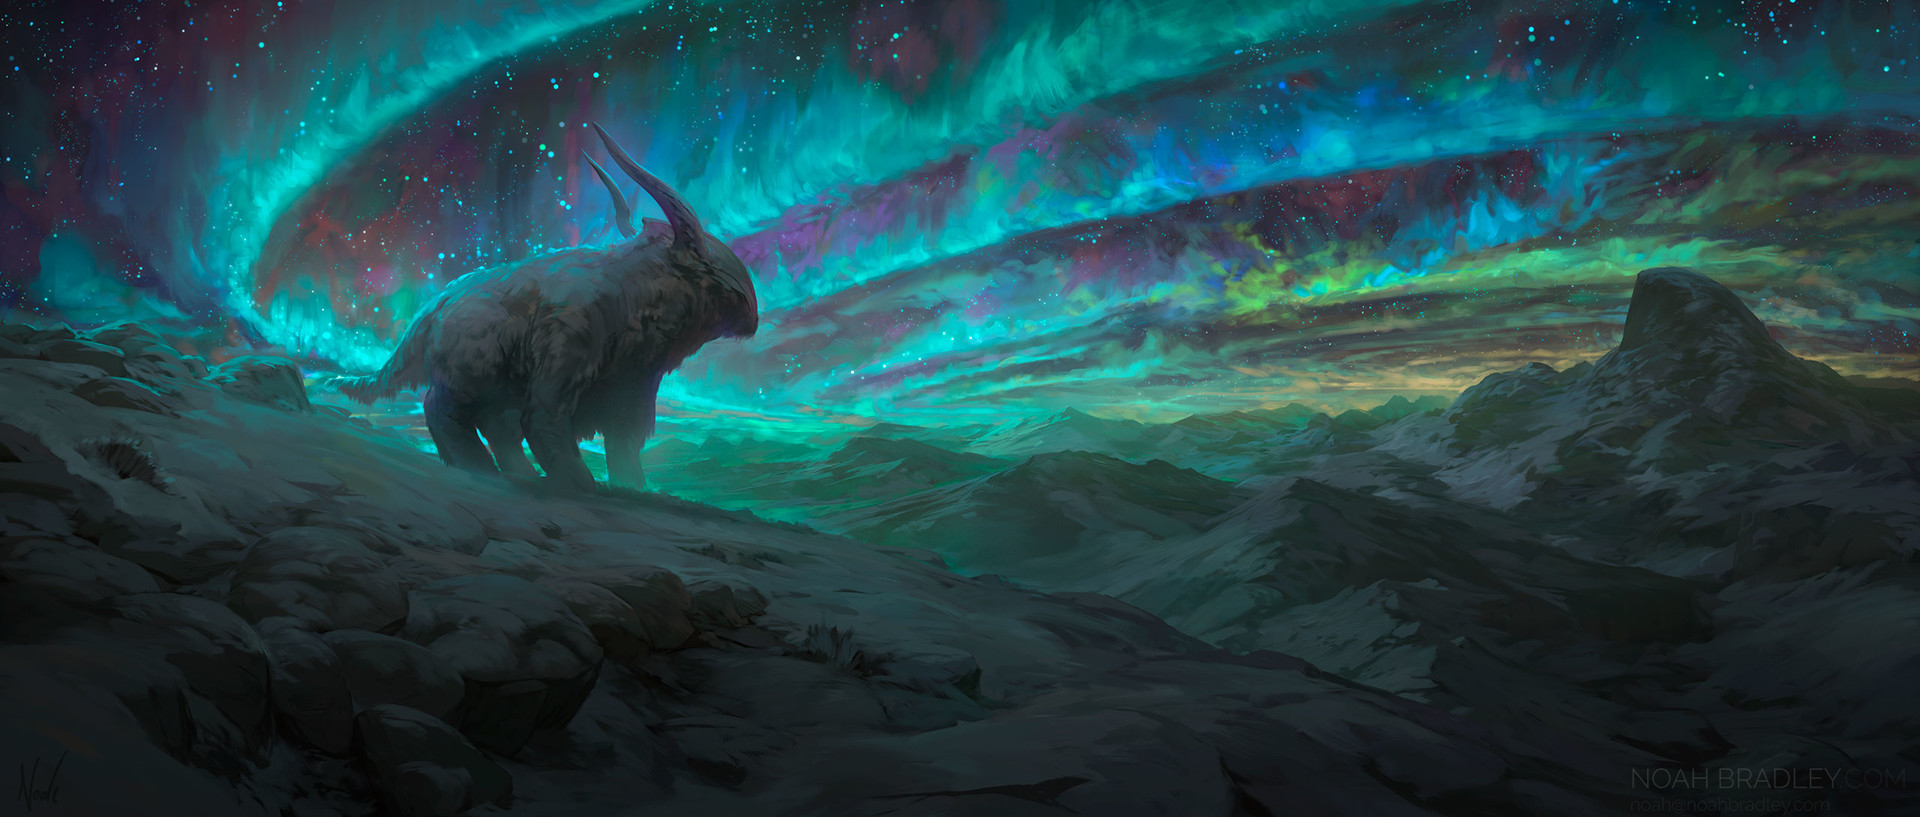 Noah Bradley Digital Painting Illustration Echoes of Another Life